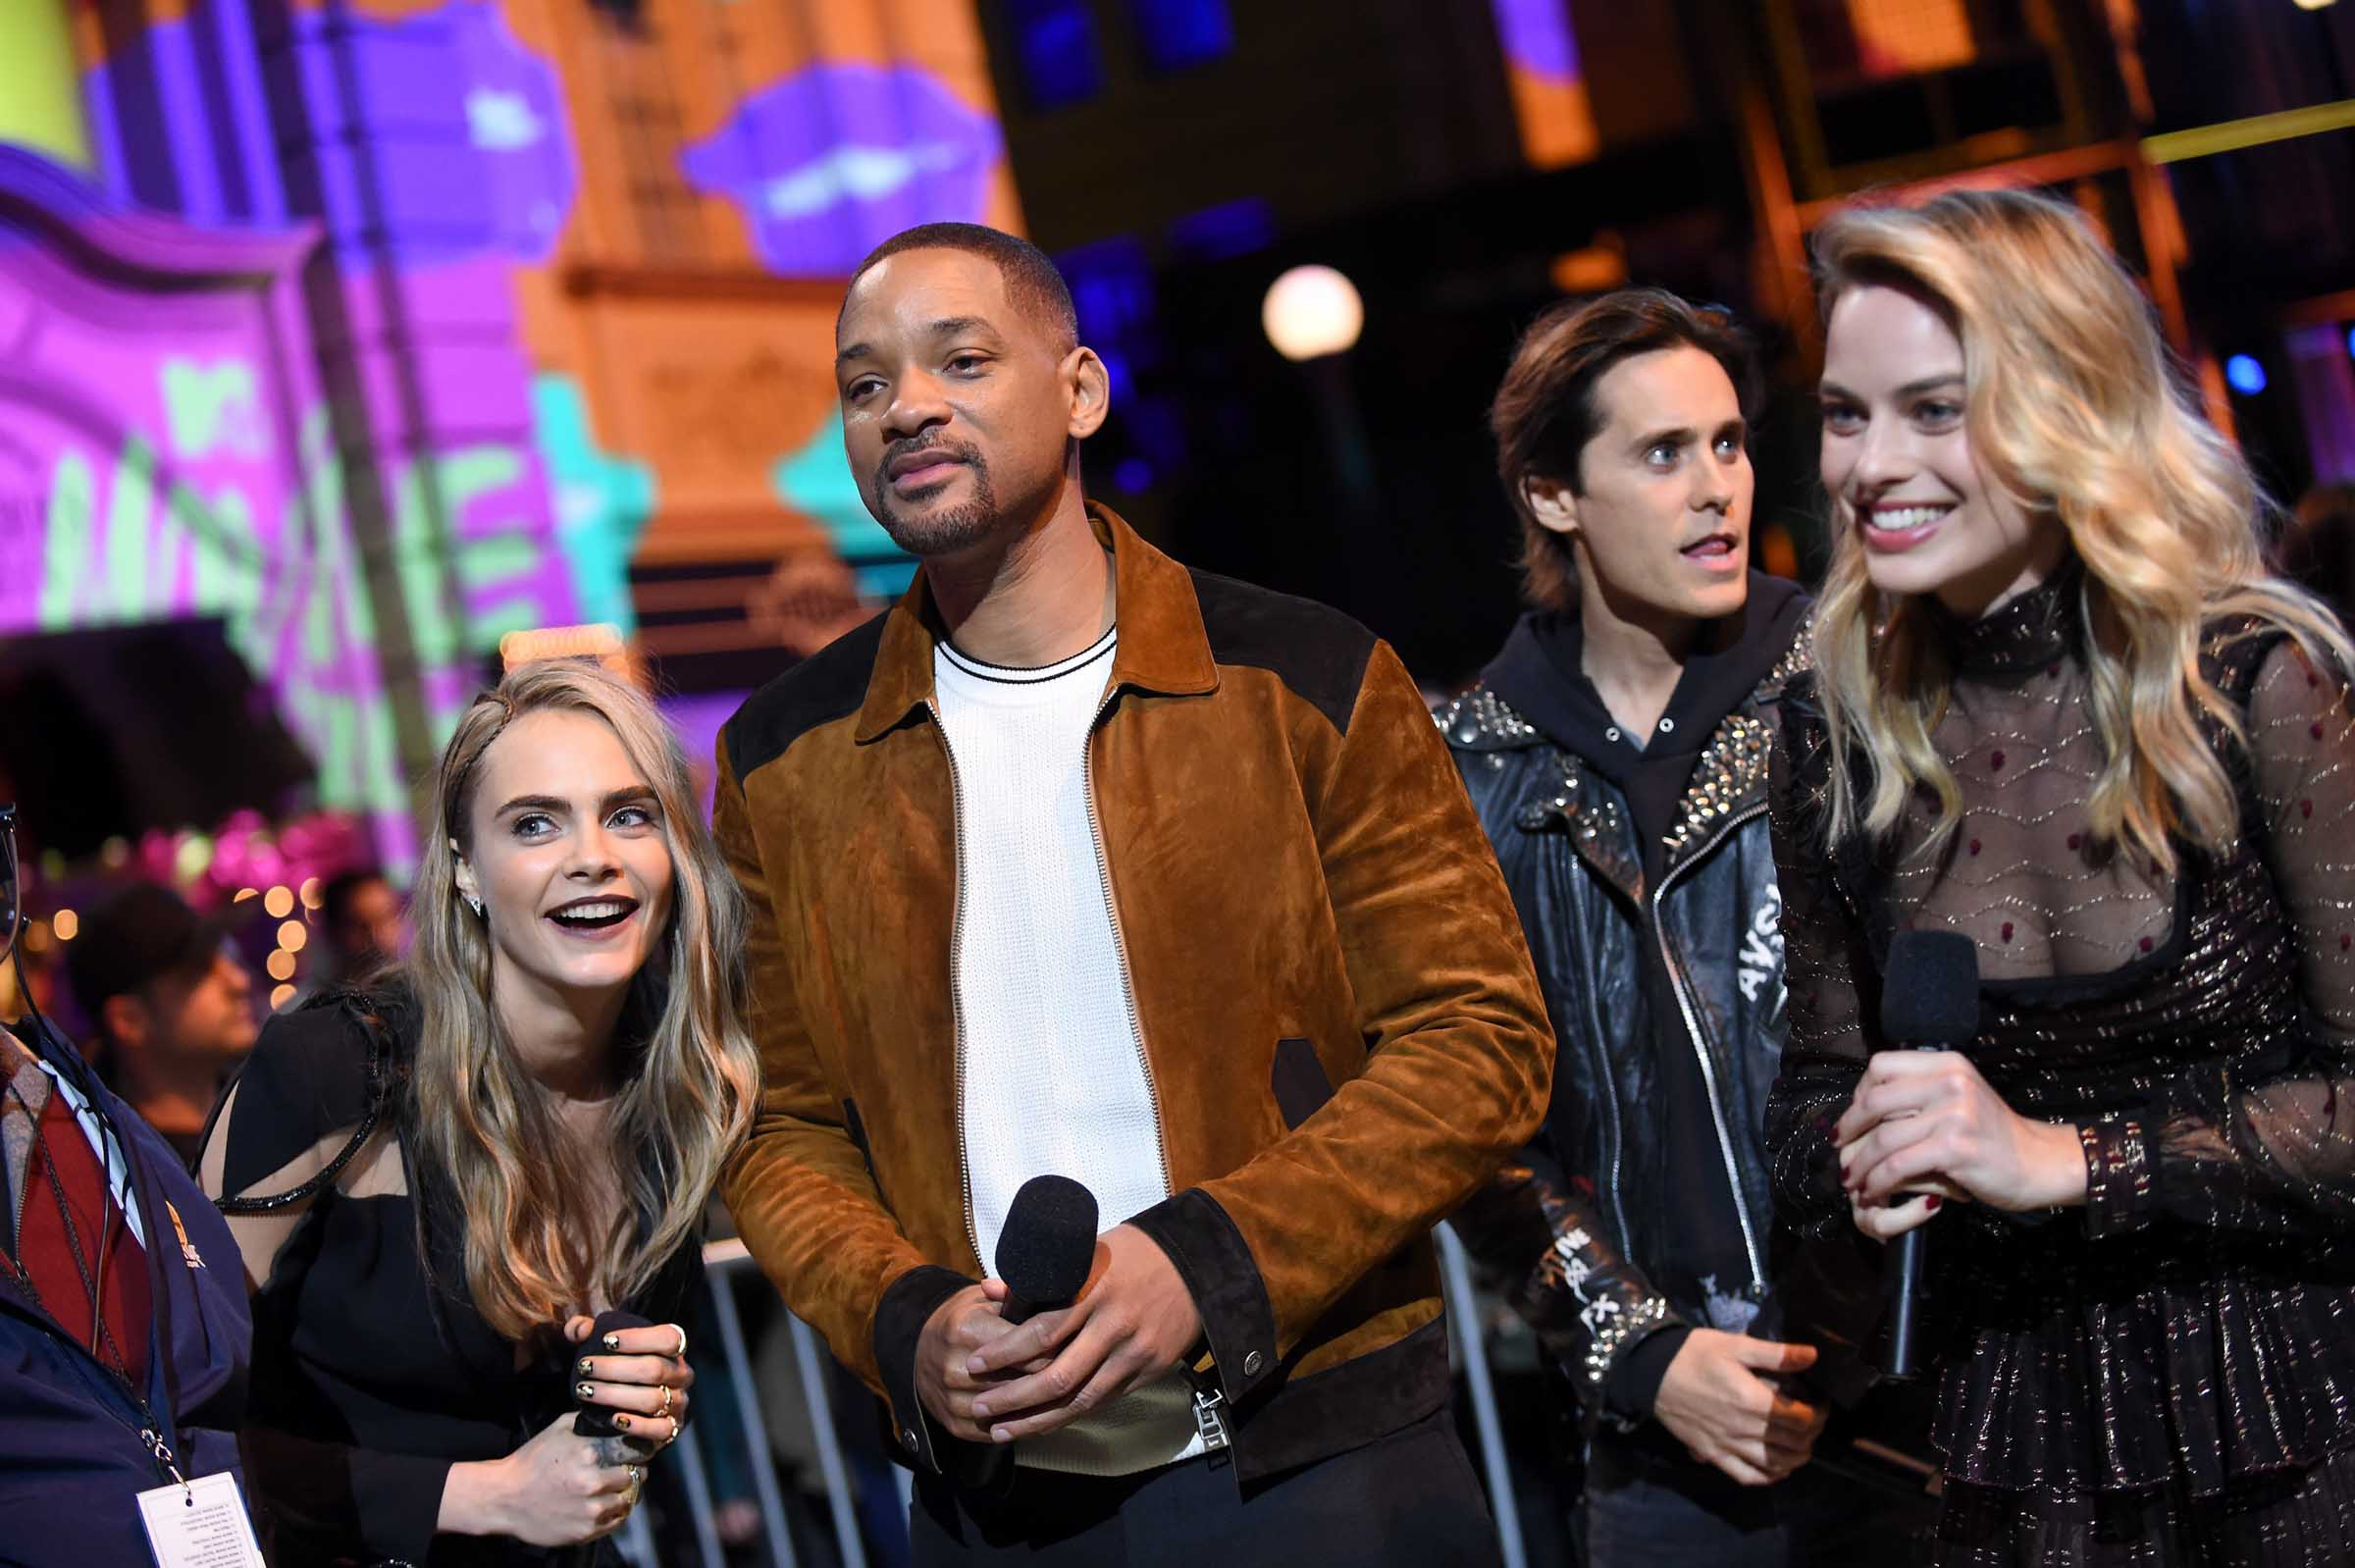 """BURBANK, CALIFORNIA - APRIL 09:  (L-R) Actress Cara Delevigne, Will Smith, Jared Leto and Margot Robbie speak onstage during the 2016 MTV Movie Awards at Warner Bros. Studios on April 9, 2016 in Burbank, California.  MTV Movie Awards airs April 10, 2016 at 8pm ET/PT.  (Photo by Emma McIntyre/Getty Images for MTV)"""